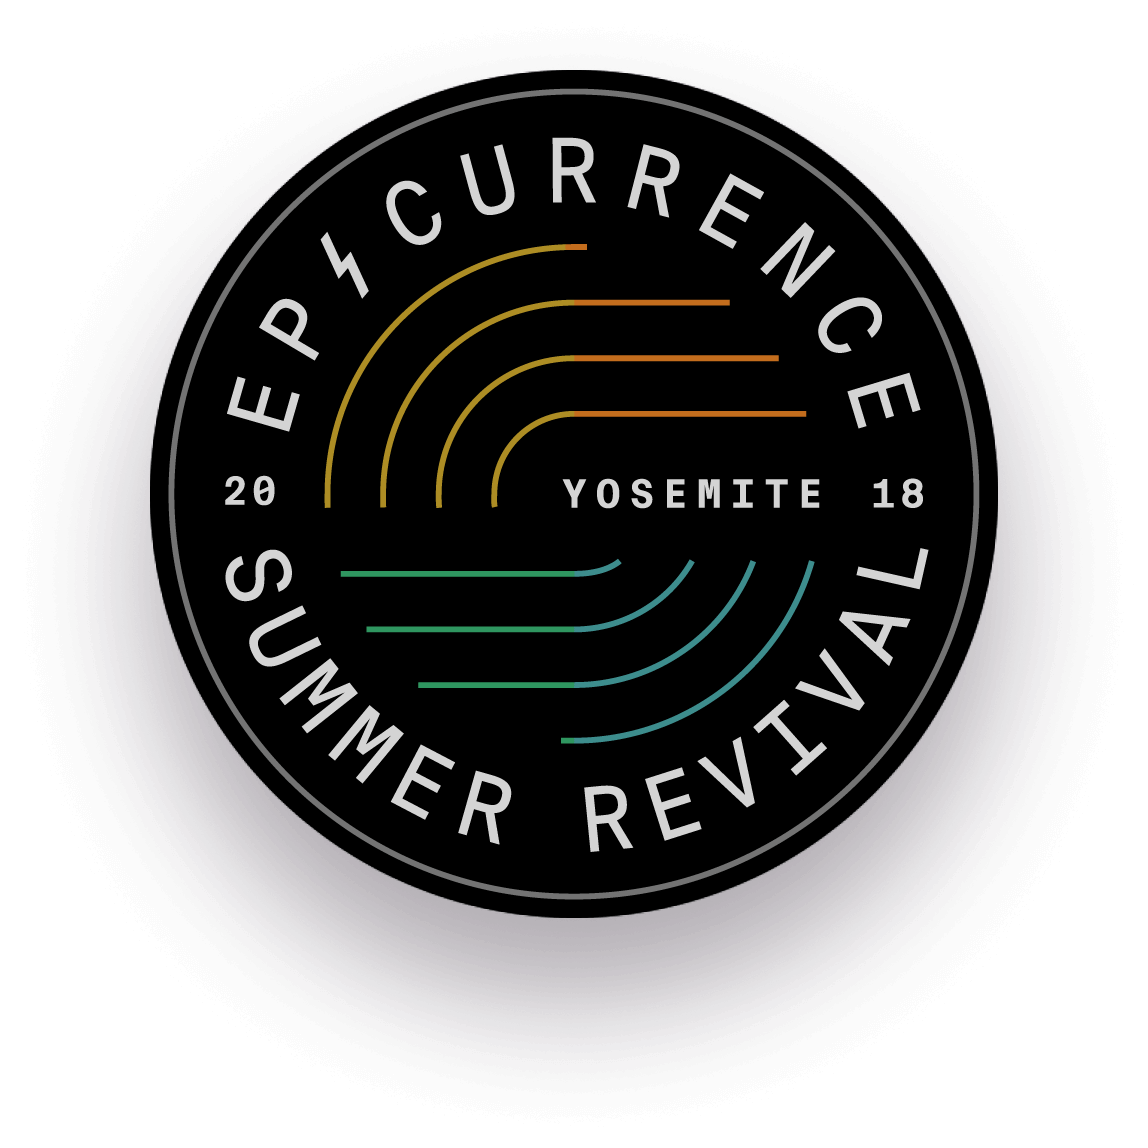 Epicurrence 2018 Badge